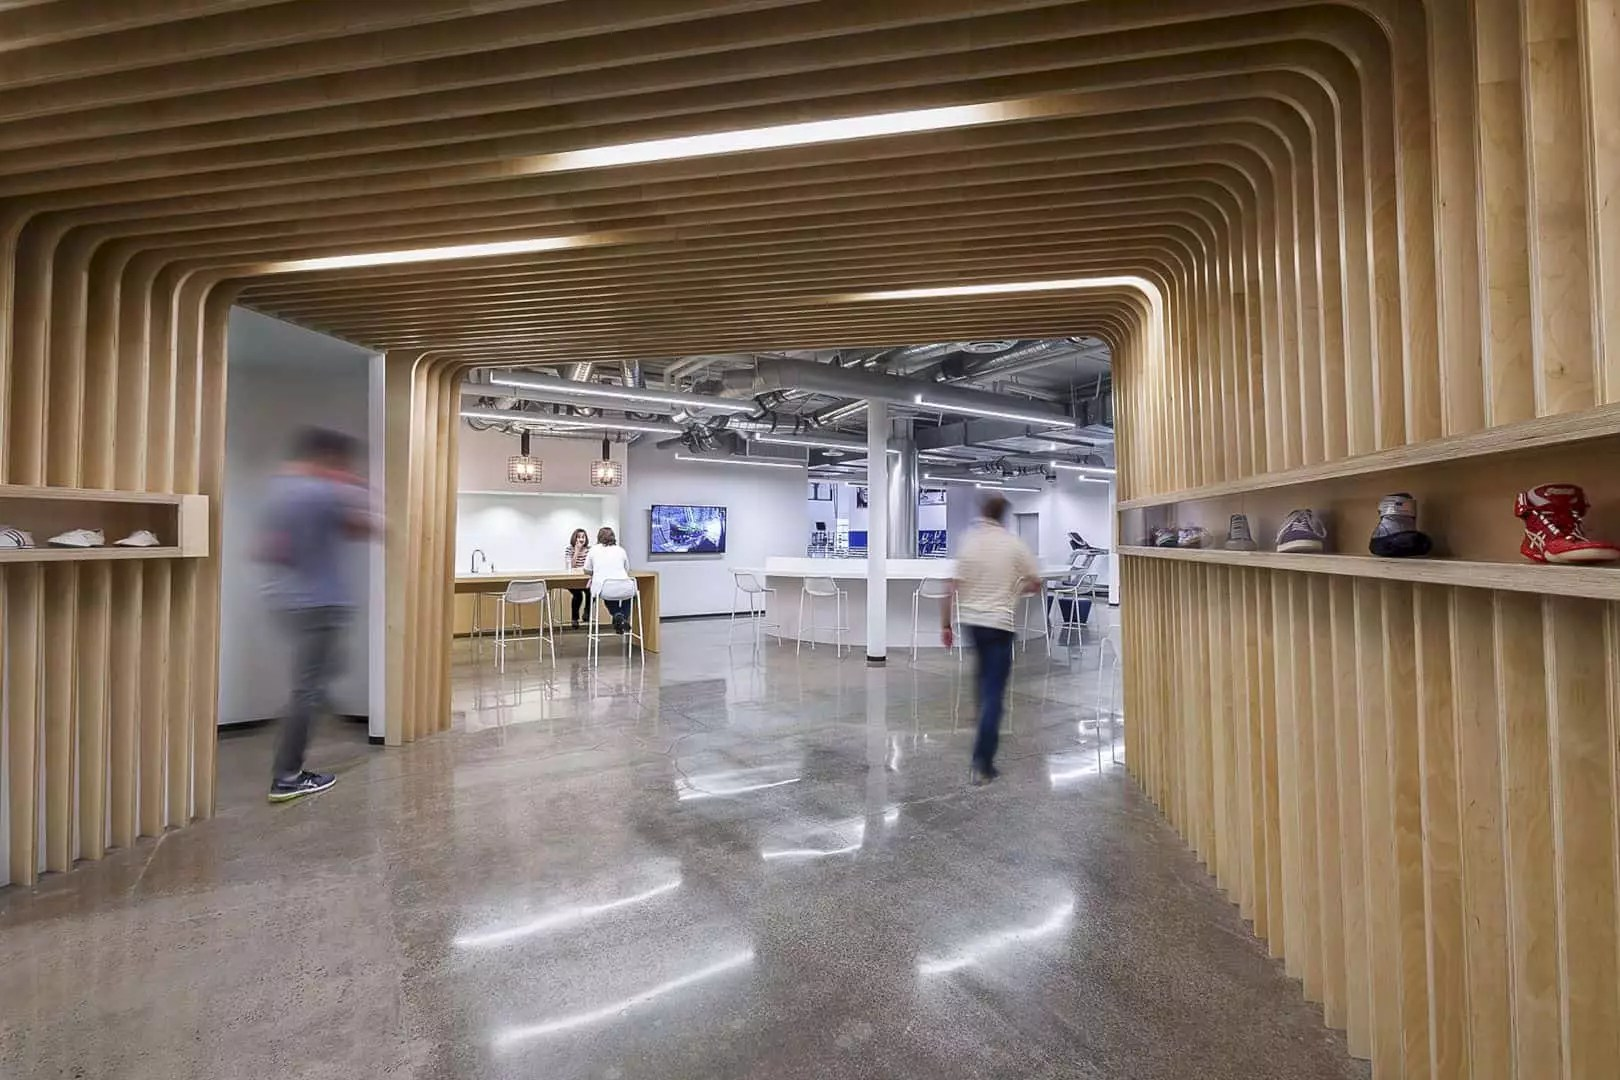 ASICS North America Headquarters: An Office Environment with Health, Fitness, and Wellness Advantages